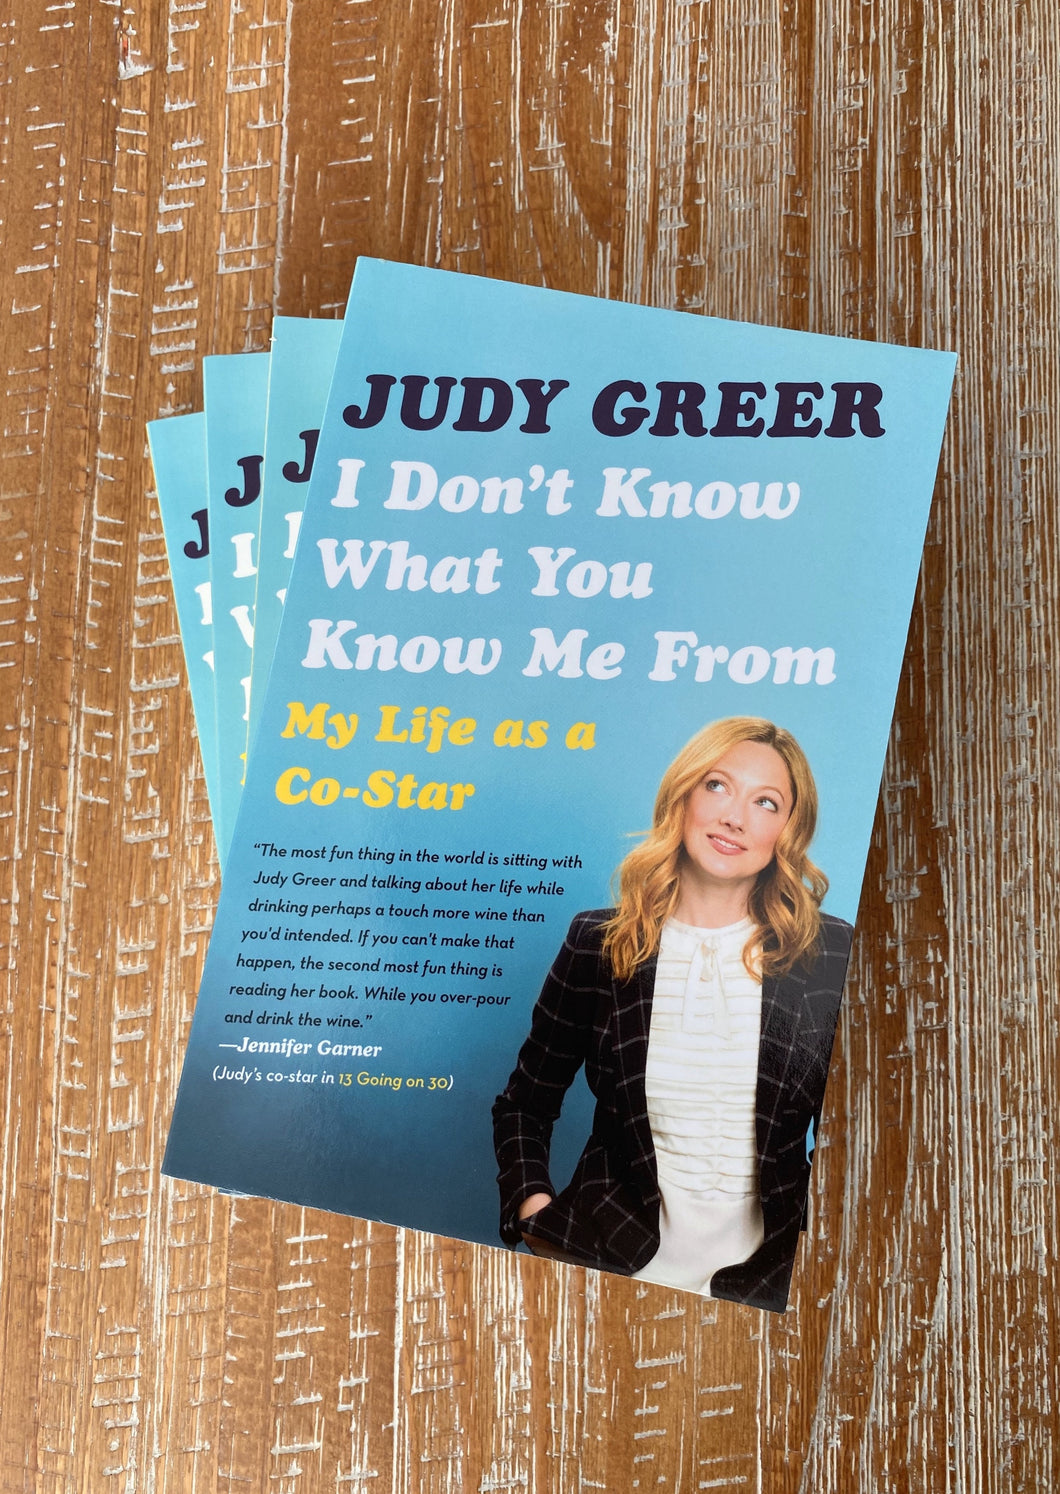 I Don't Know What You Know Me From: My Life as a Co-Star by Judy Greer